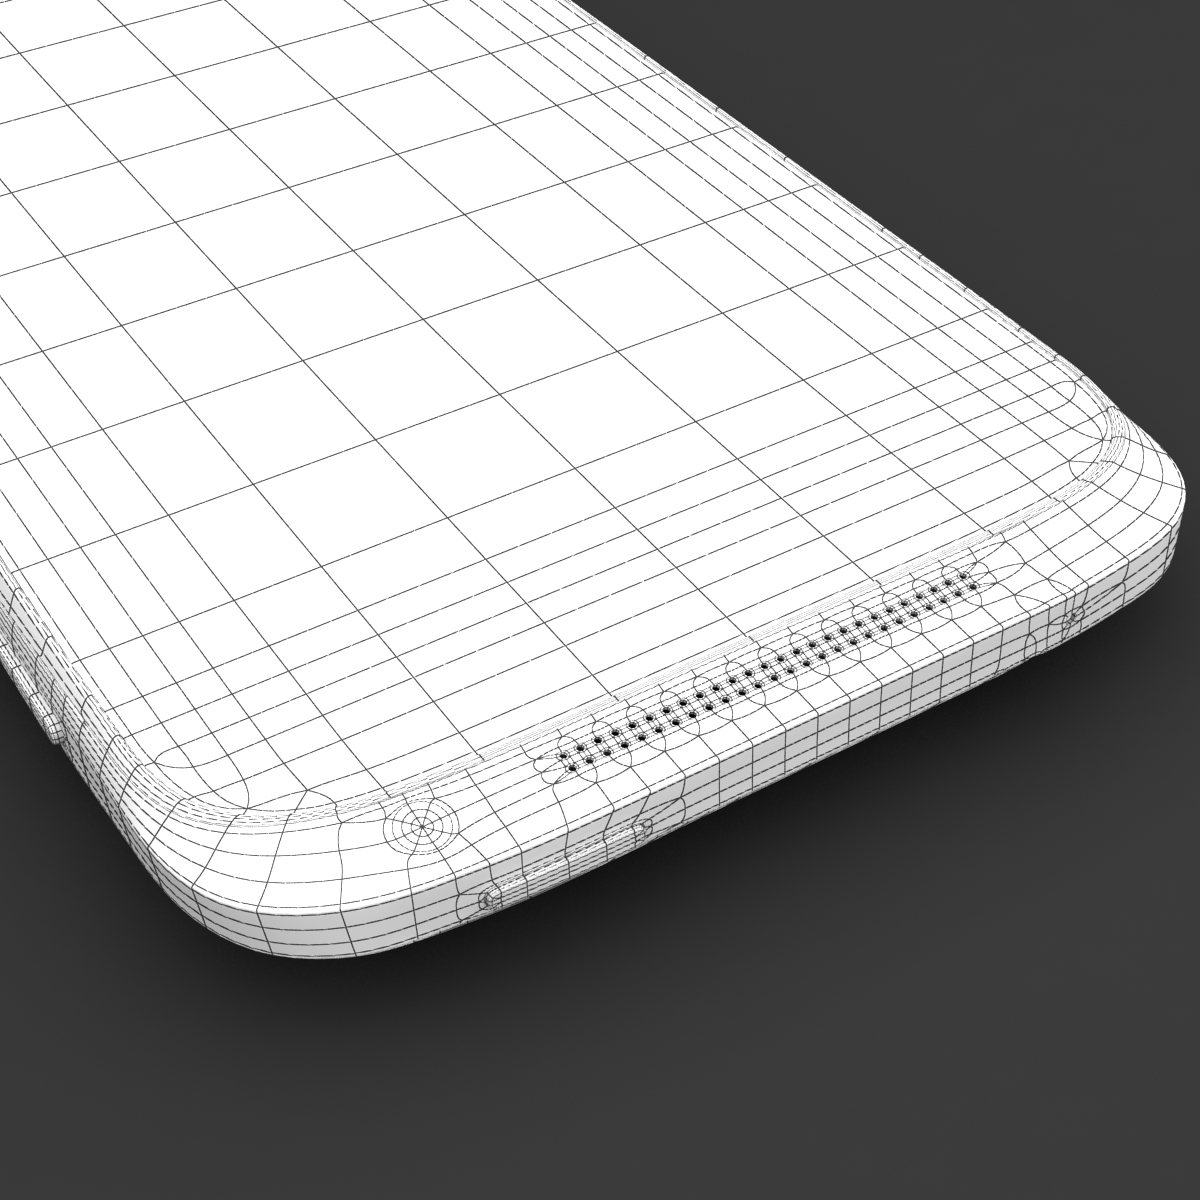 htc one x+ black and white 3d model 3ds max fbx c4d lwo obj 151477